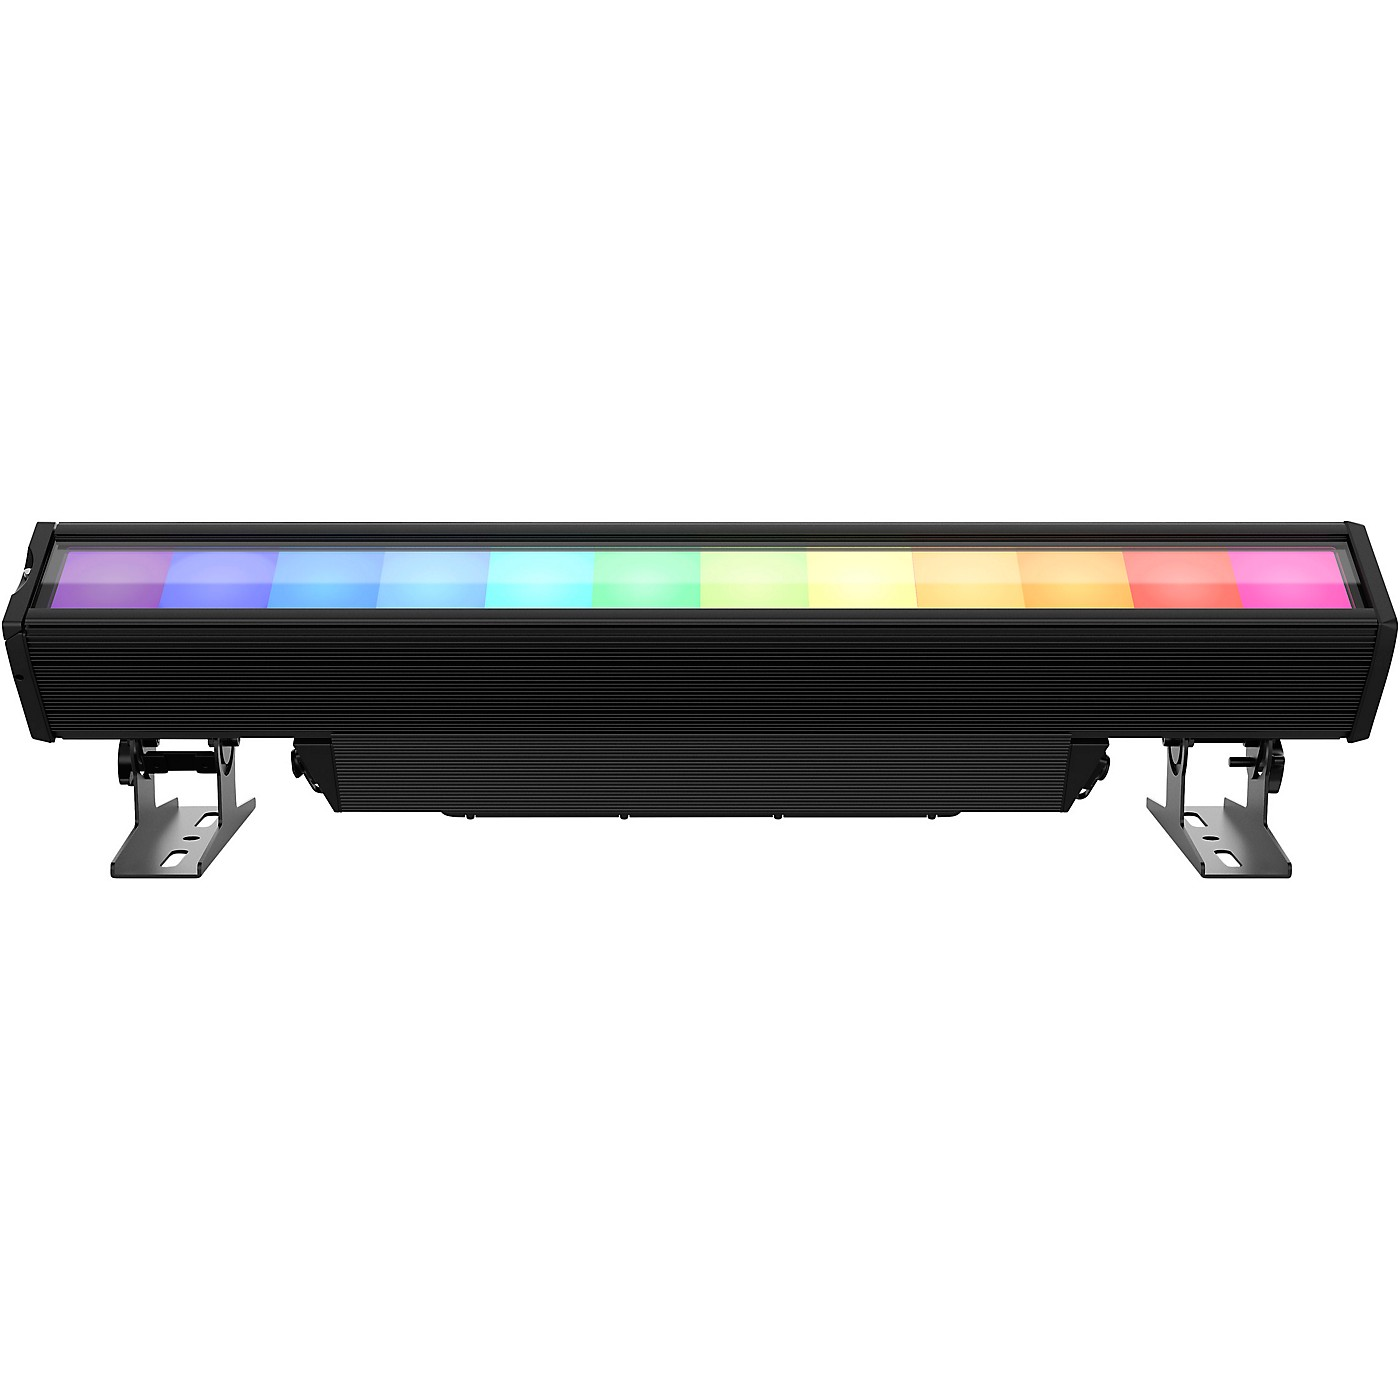 CHAUVET Professional COLORado LED Solo Batten Light thumbnail